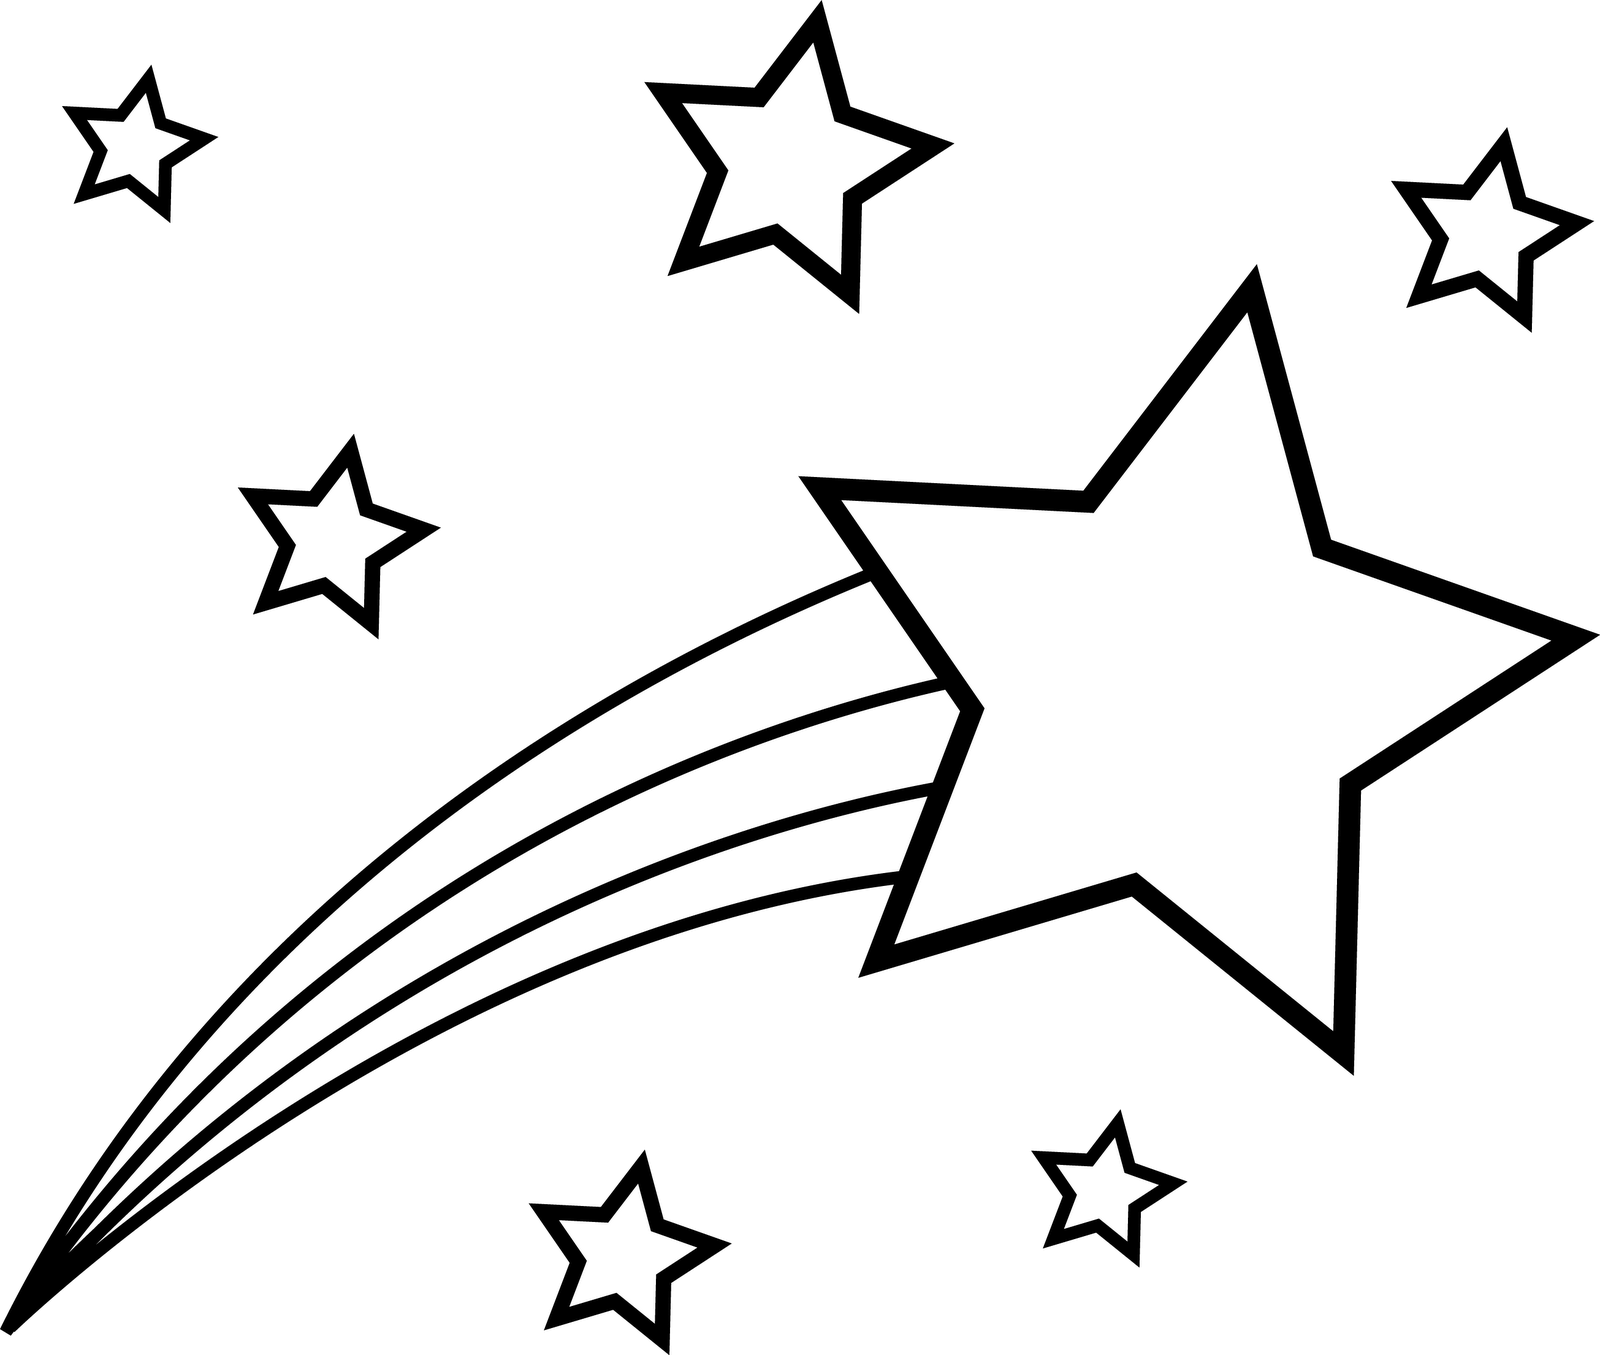 shooting star clip art black and white-shooting star clip art black and white-1